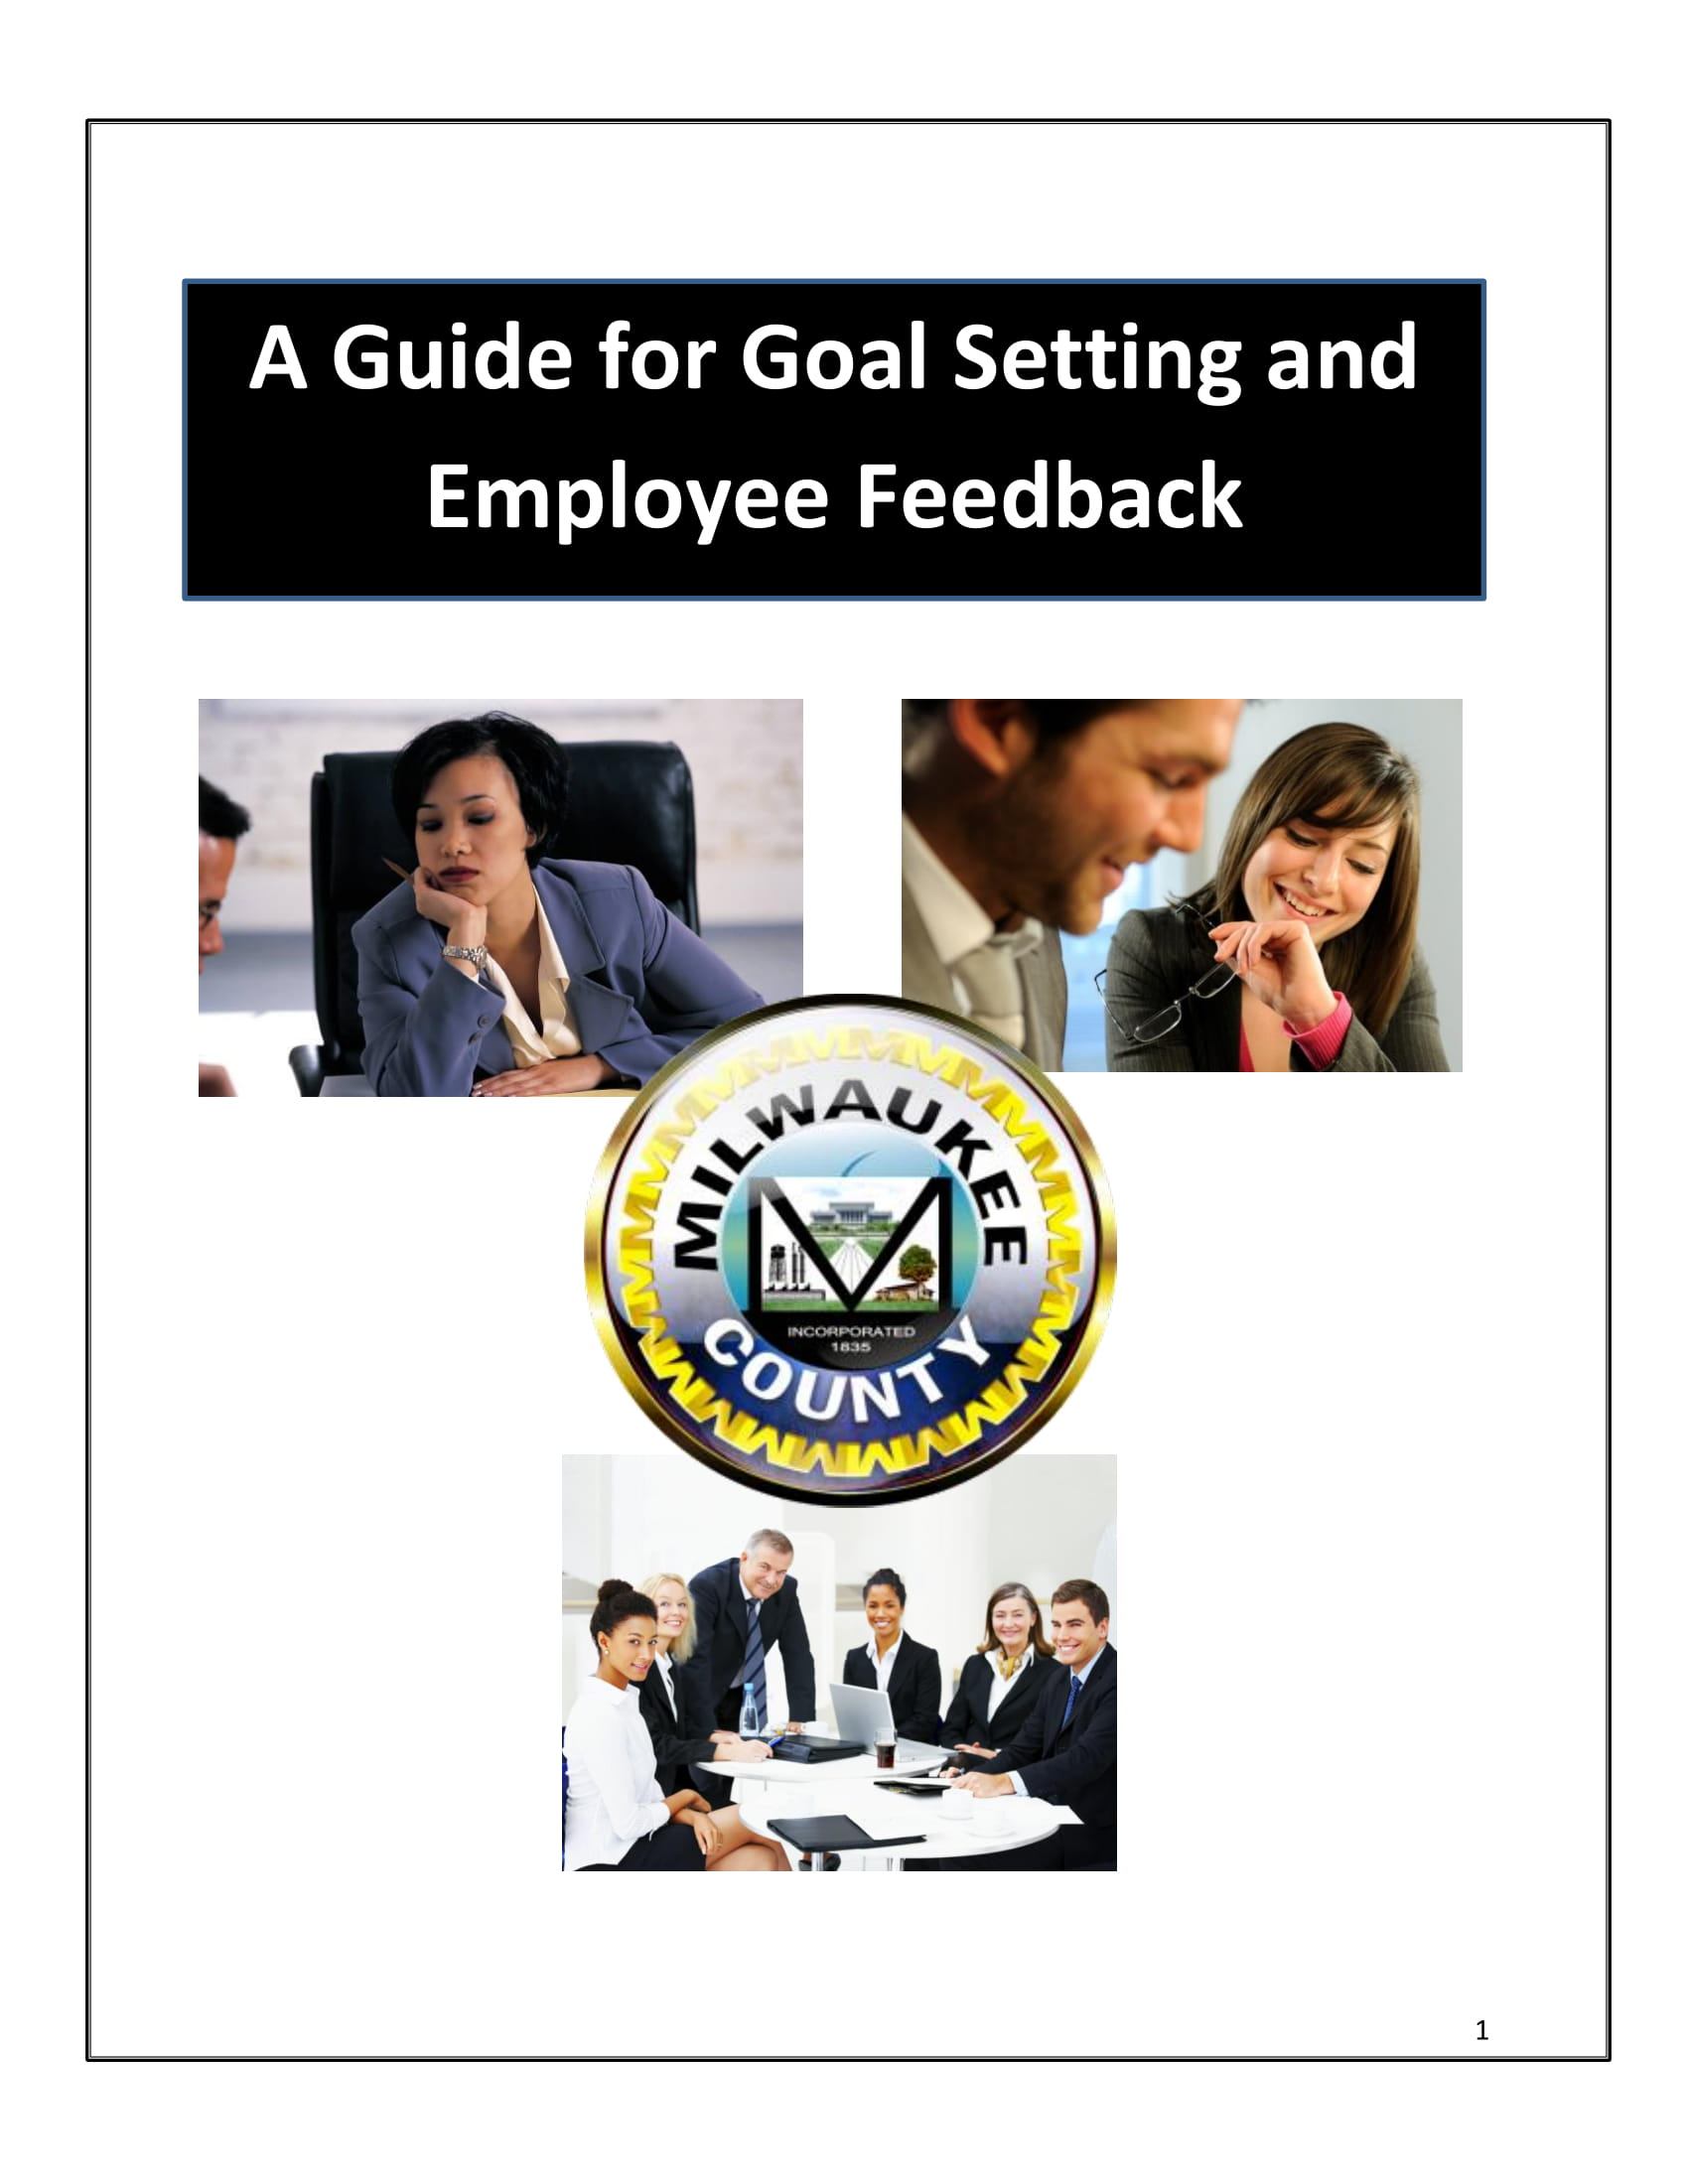 employee goal setting and feedback guide example